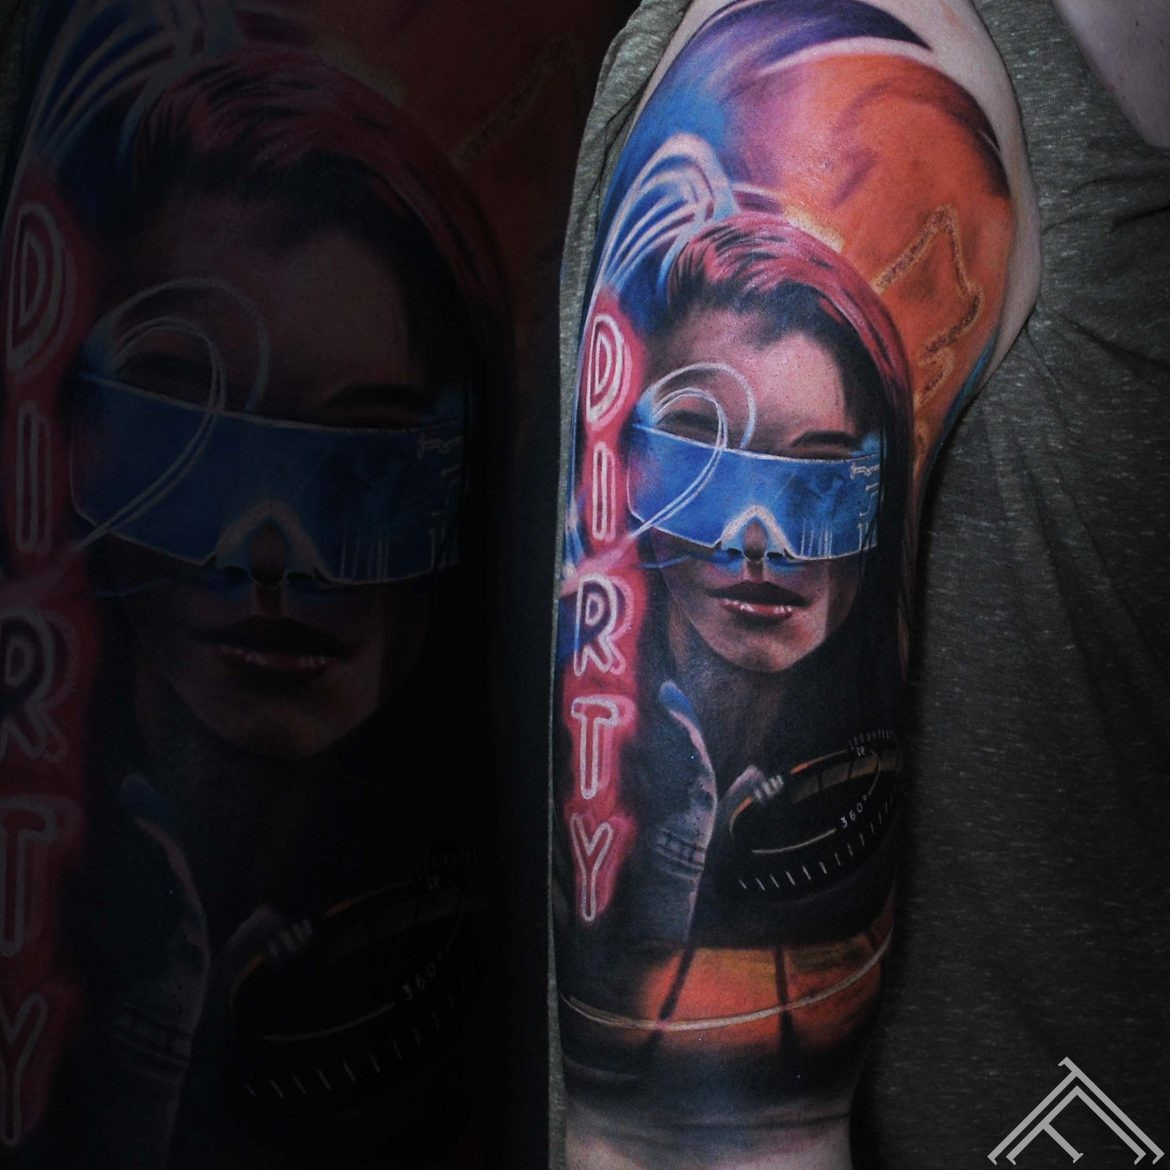 dirty-portrait-woman-fantasy-andersontattoo-tattoofrequency-riga-art-ml